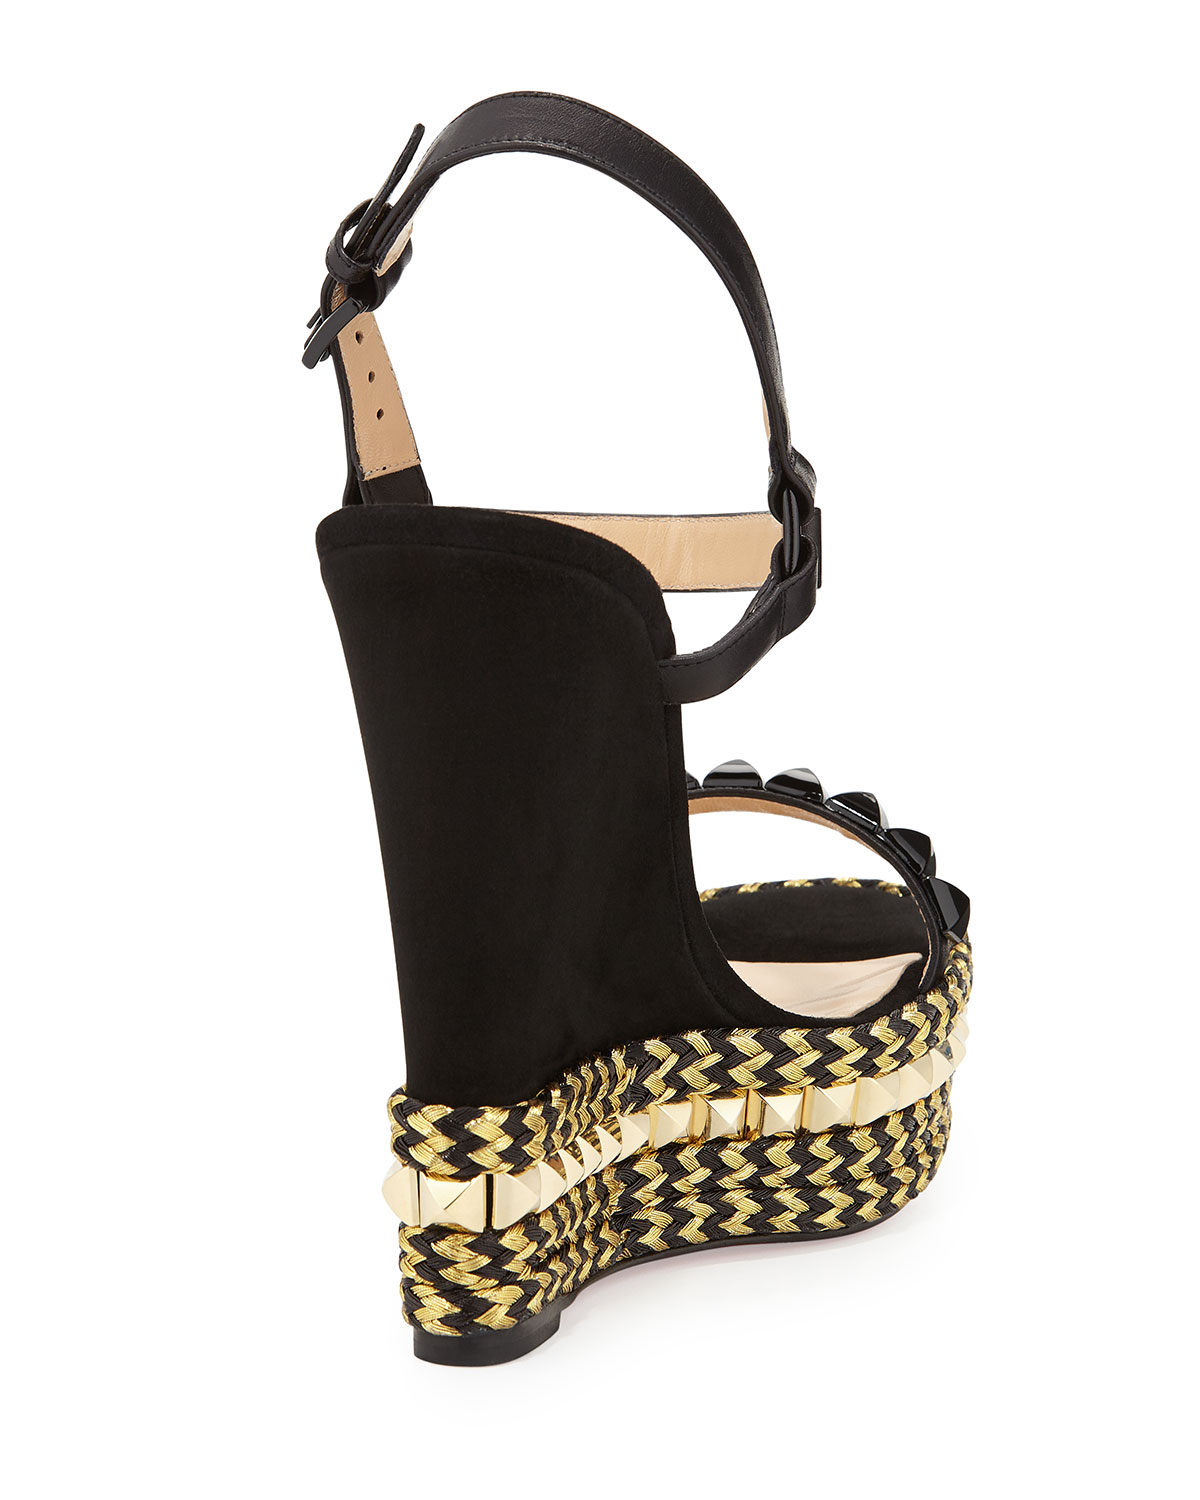 christian louboutin espadrille wedges Black suede | cosmetics ...